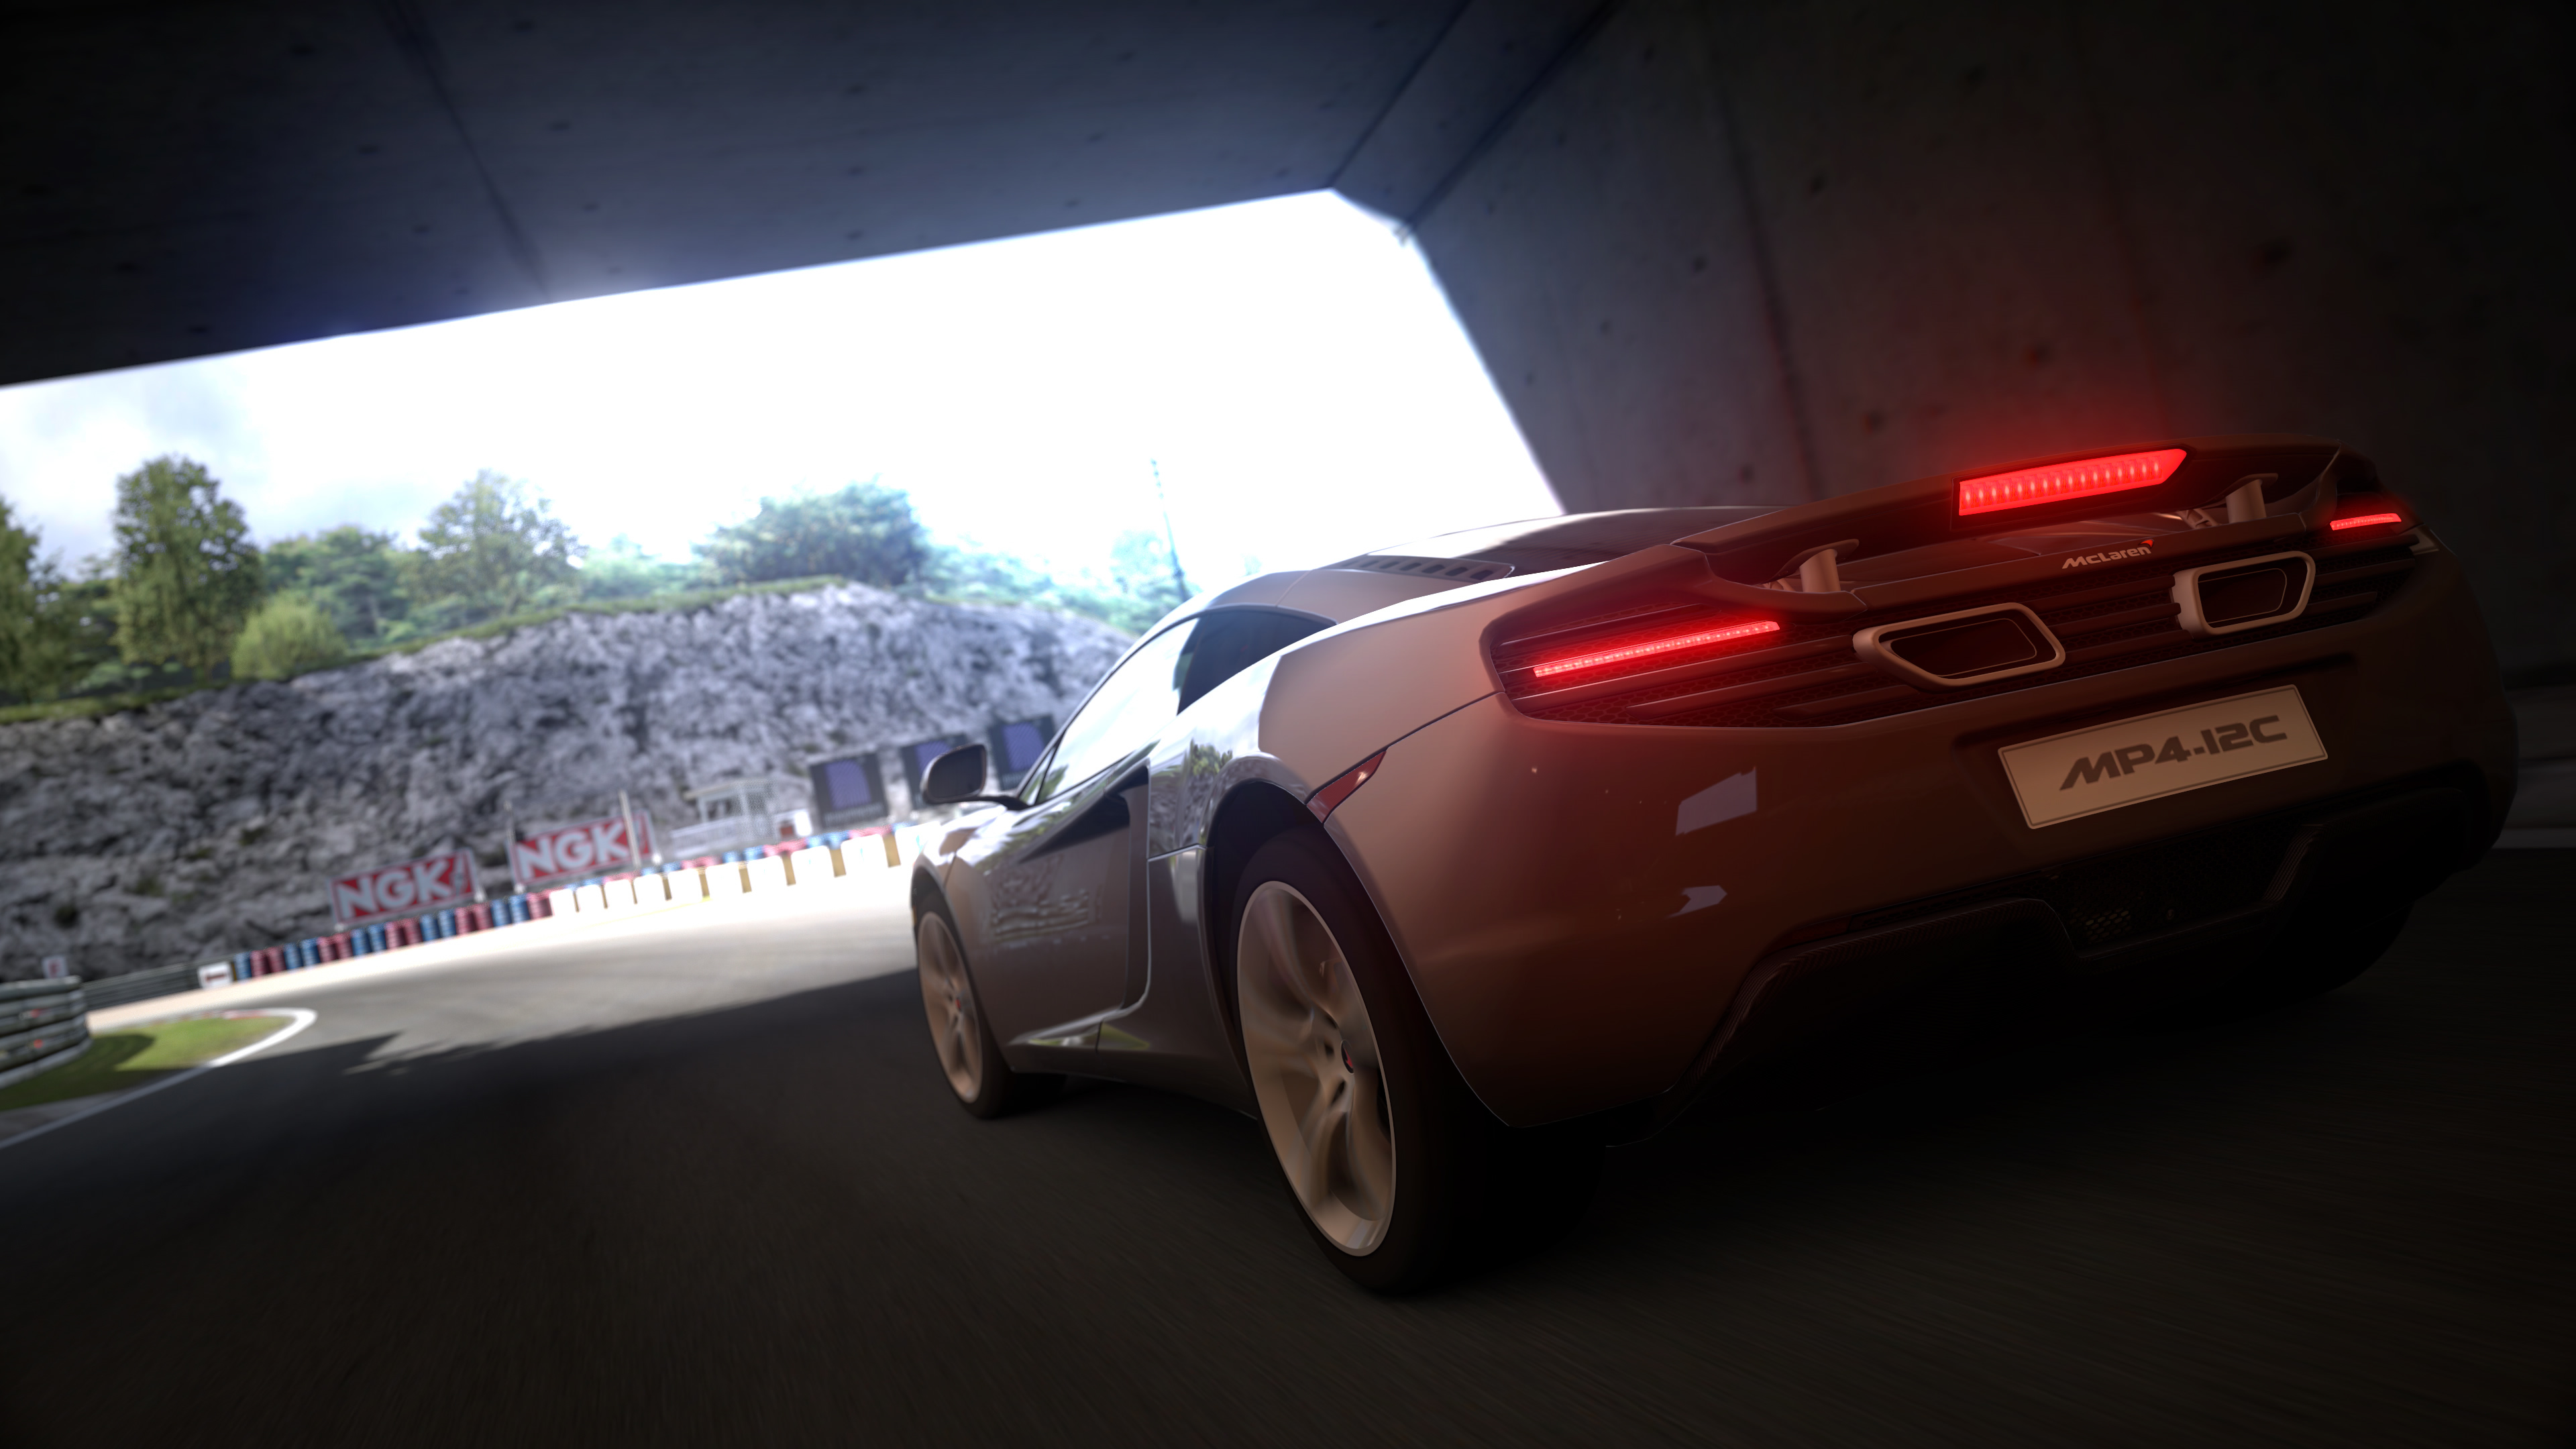 gran turismo 6 will still have standard cars without interiors team vvv